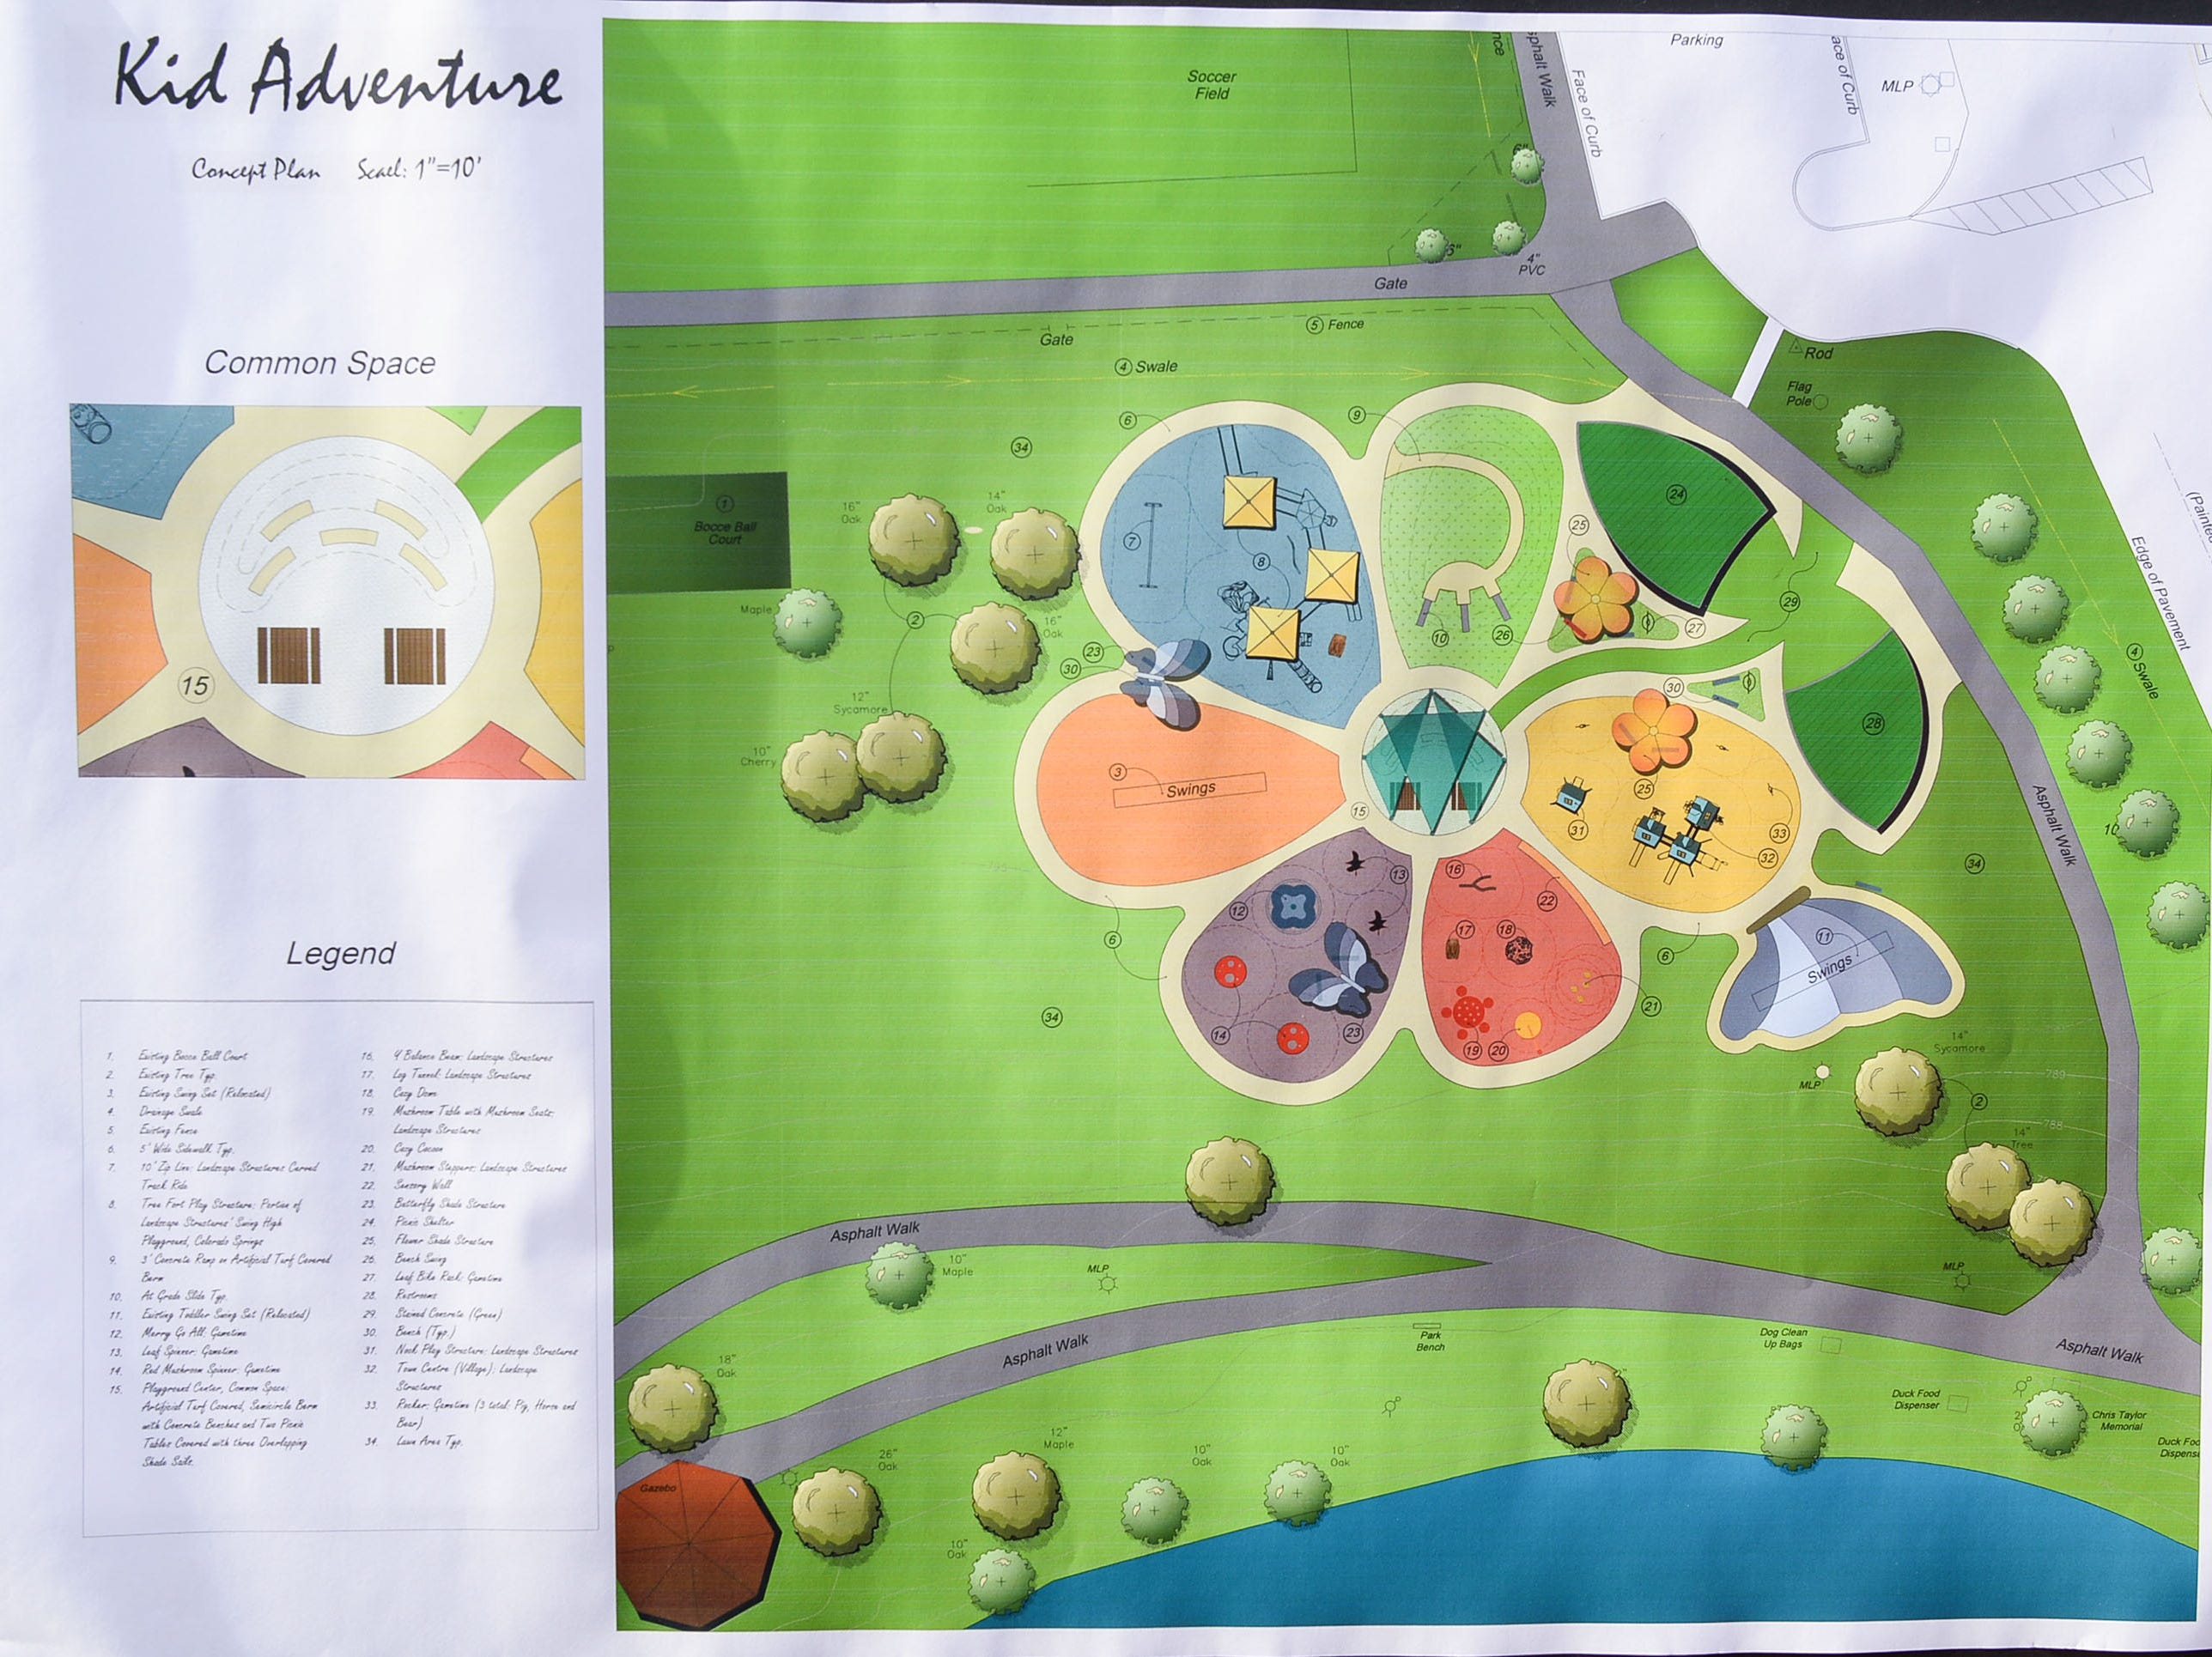 A proposed design for a new KidVenture park at the Anderson Sports and Entertainment Complex was on display during the annual spring cleanup day Saturday.